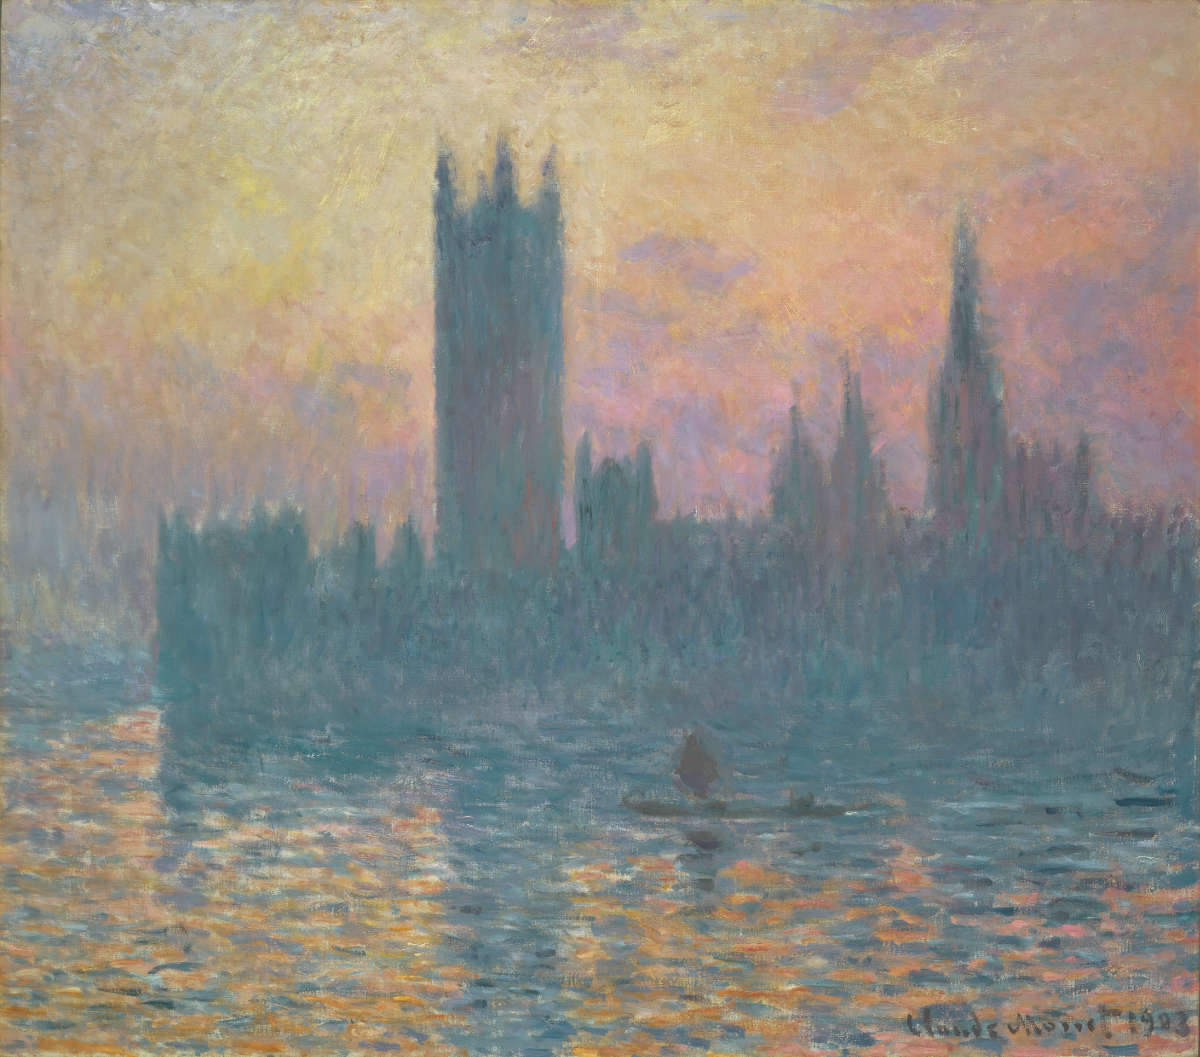 Fig. 5 -The houses of Parliament, Sunset, Claude Monet, 1903. National Gallery of Art, Washington. Chester Dale Collection.